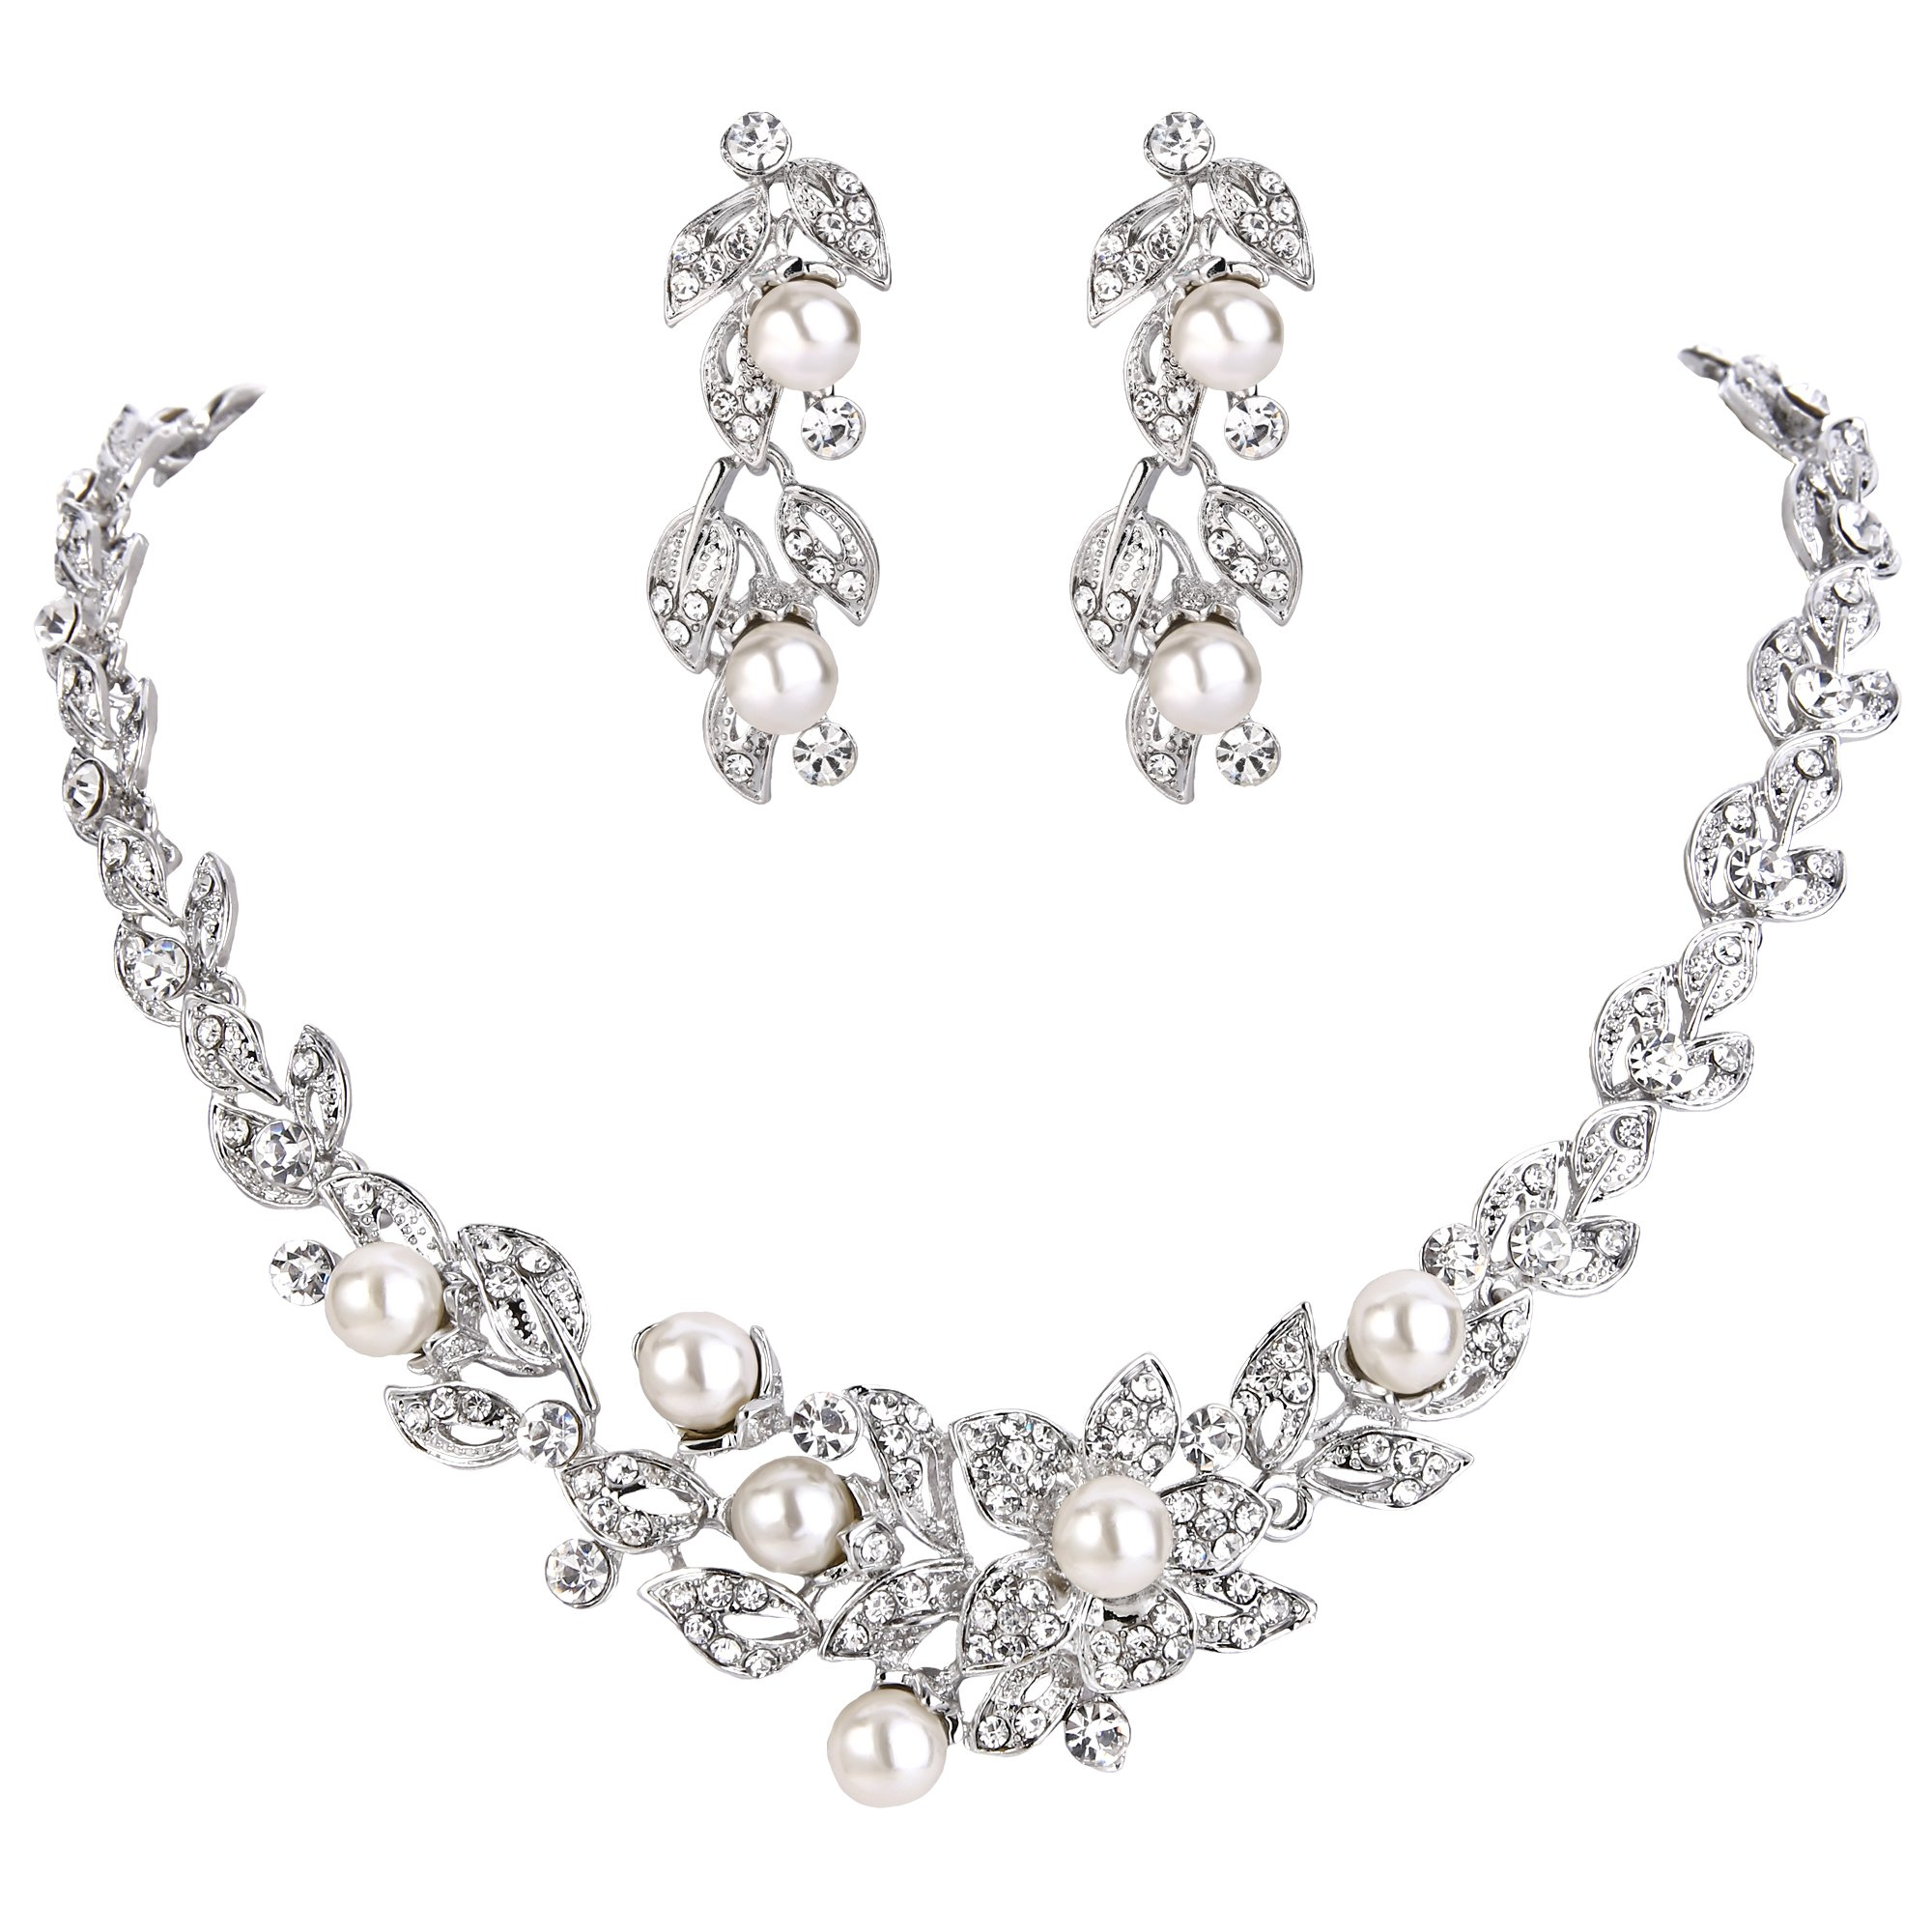 BriLove Women's Wedding Bridal Crystal Cream Simulated Pearl Cluster Leaf Vine Hibiscus Flower Collar Necklace Dangle Earrings Set Clear Silver-Tone